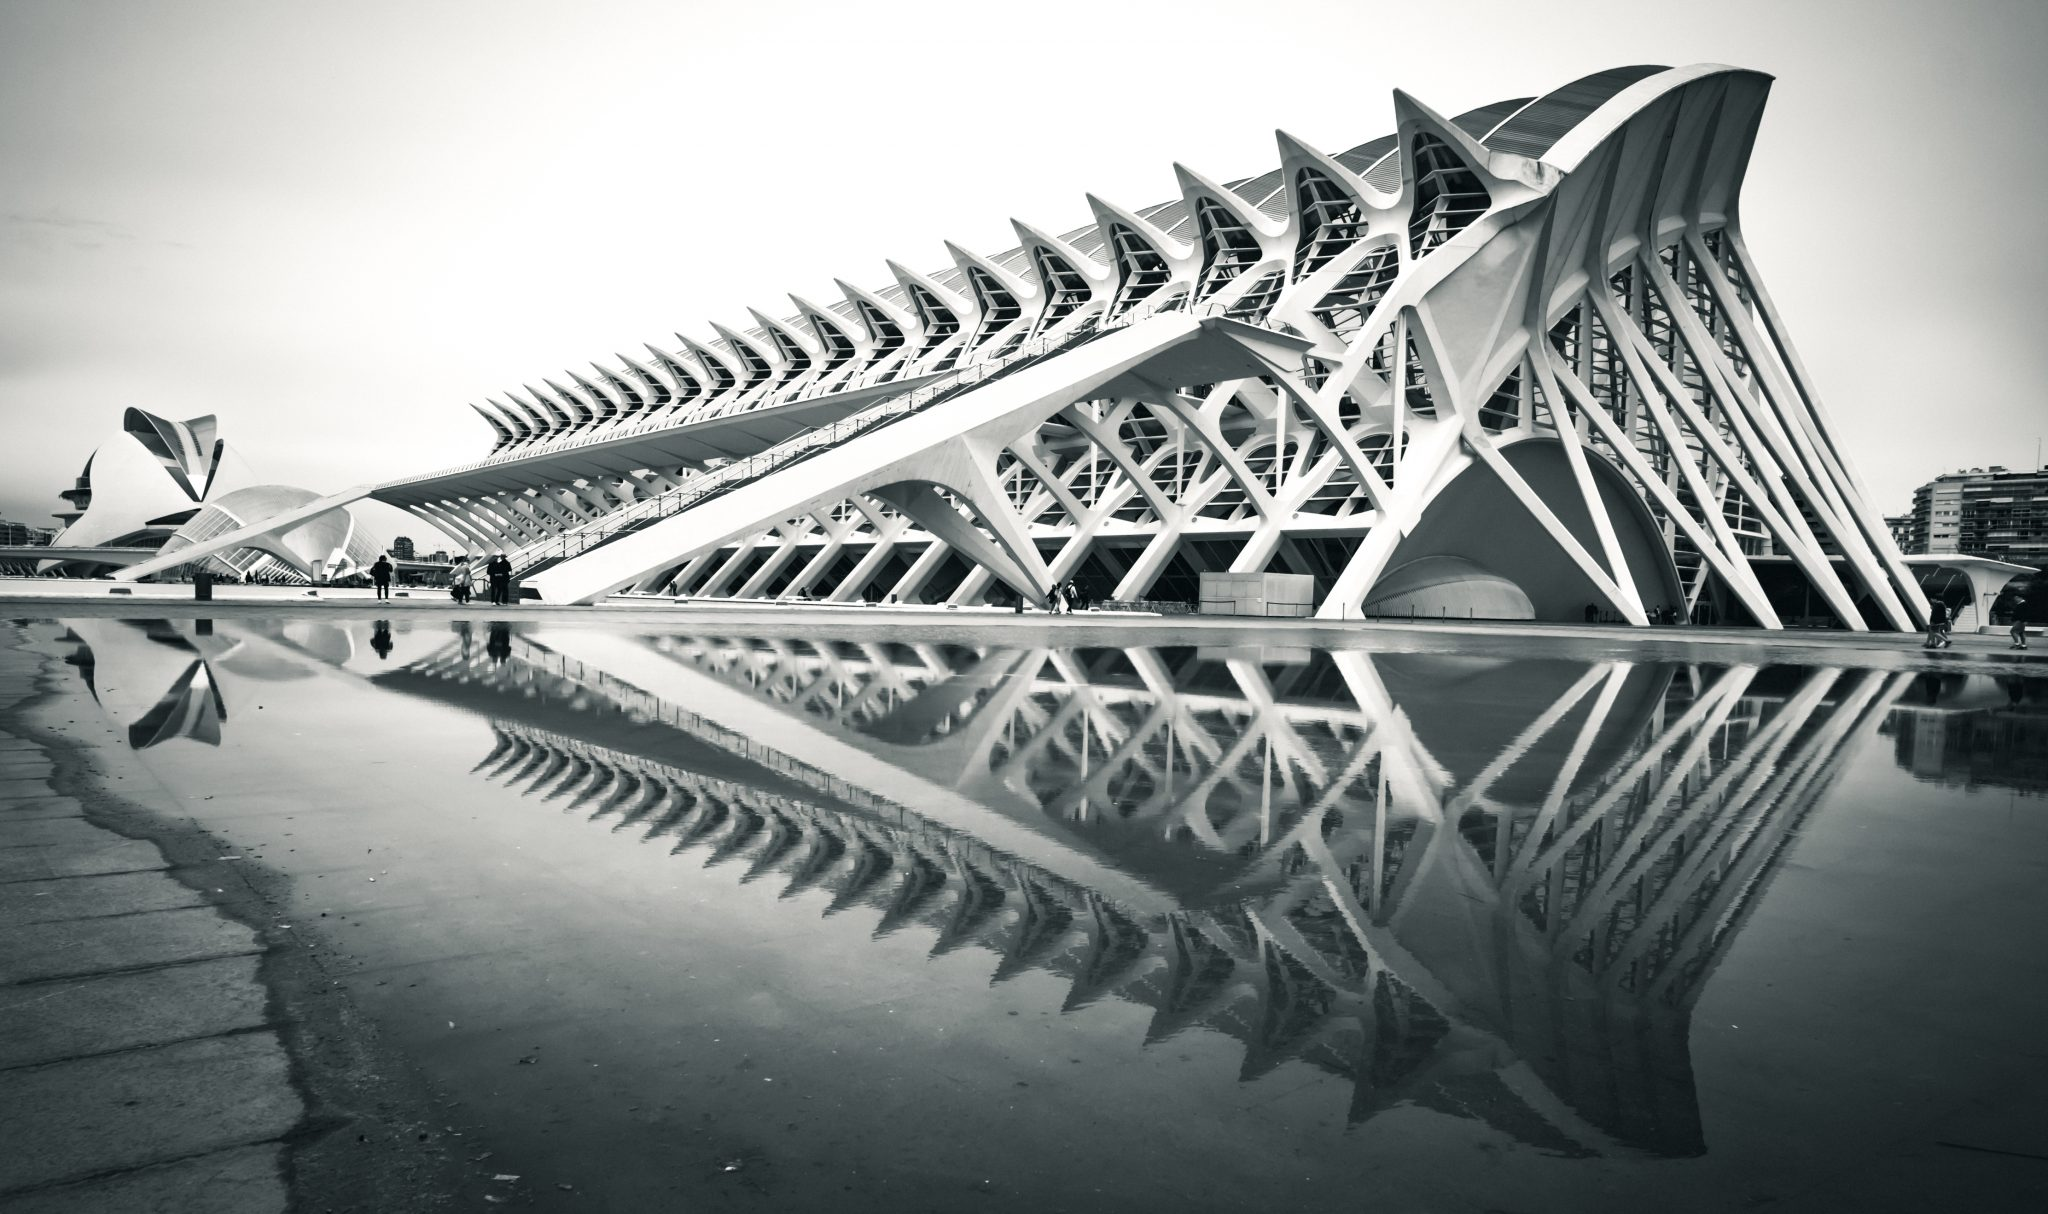 Building reflection in water at the architectural complex The City of Arts and Sciences in the city of Valencia photo by Jo Kassis